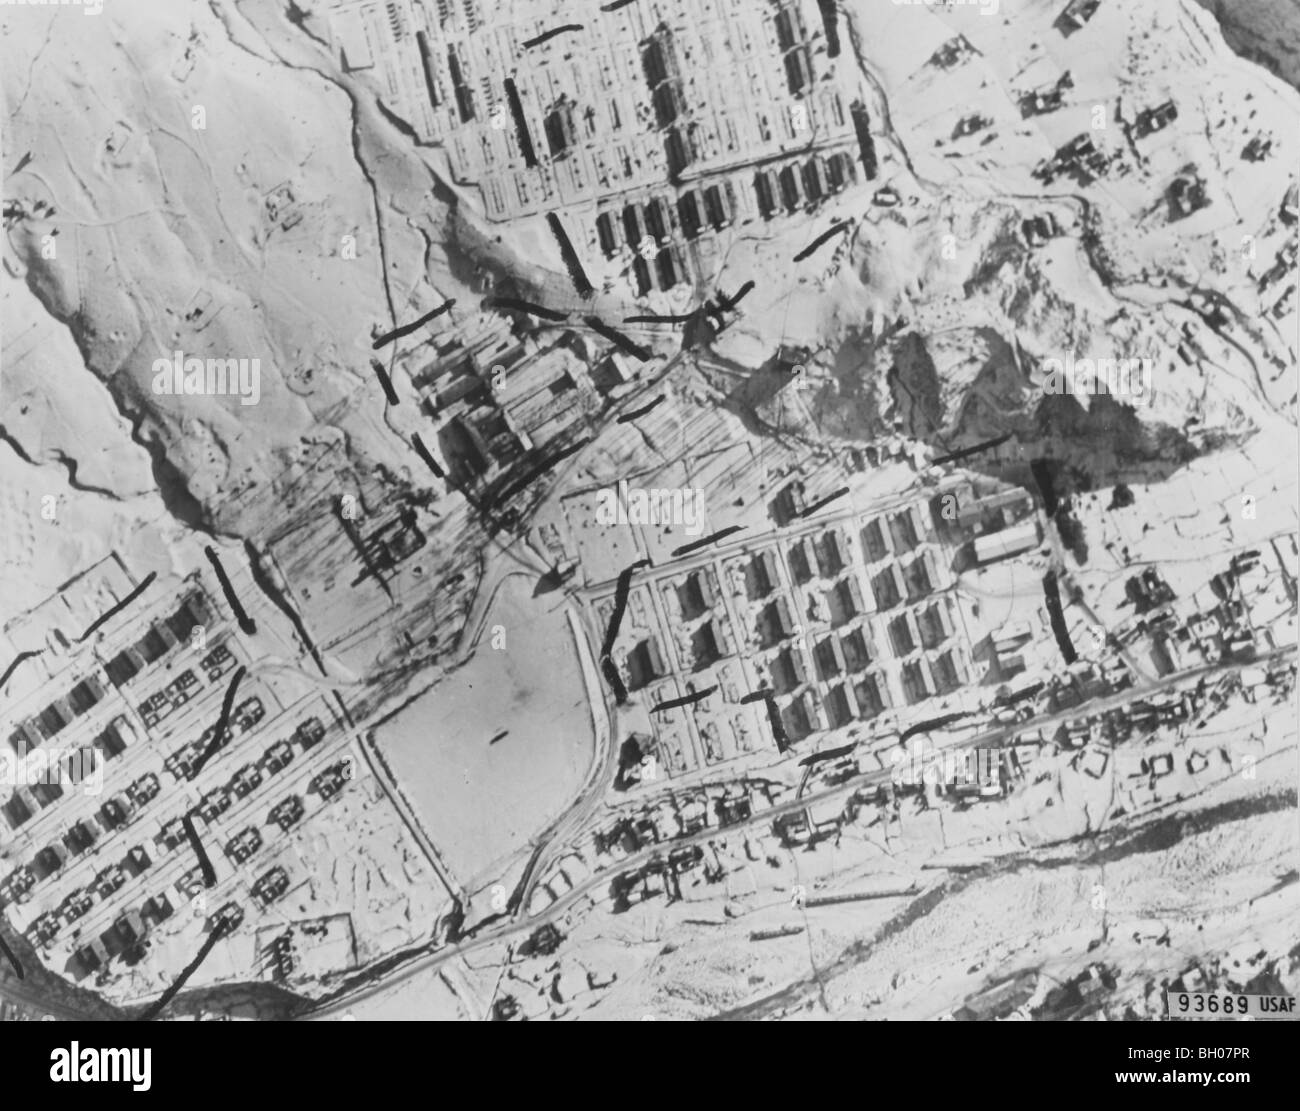 Numerous barrack buildings in this aerial photo from Air Force RB-29 reconnaissance aircraft indicate area could - Stock Image